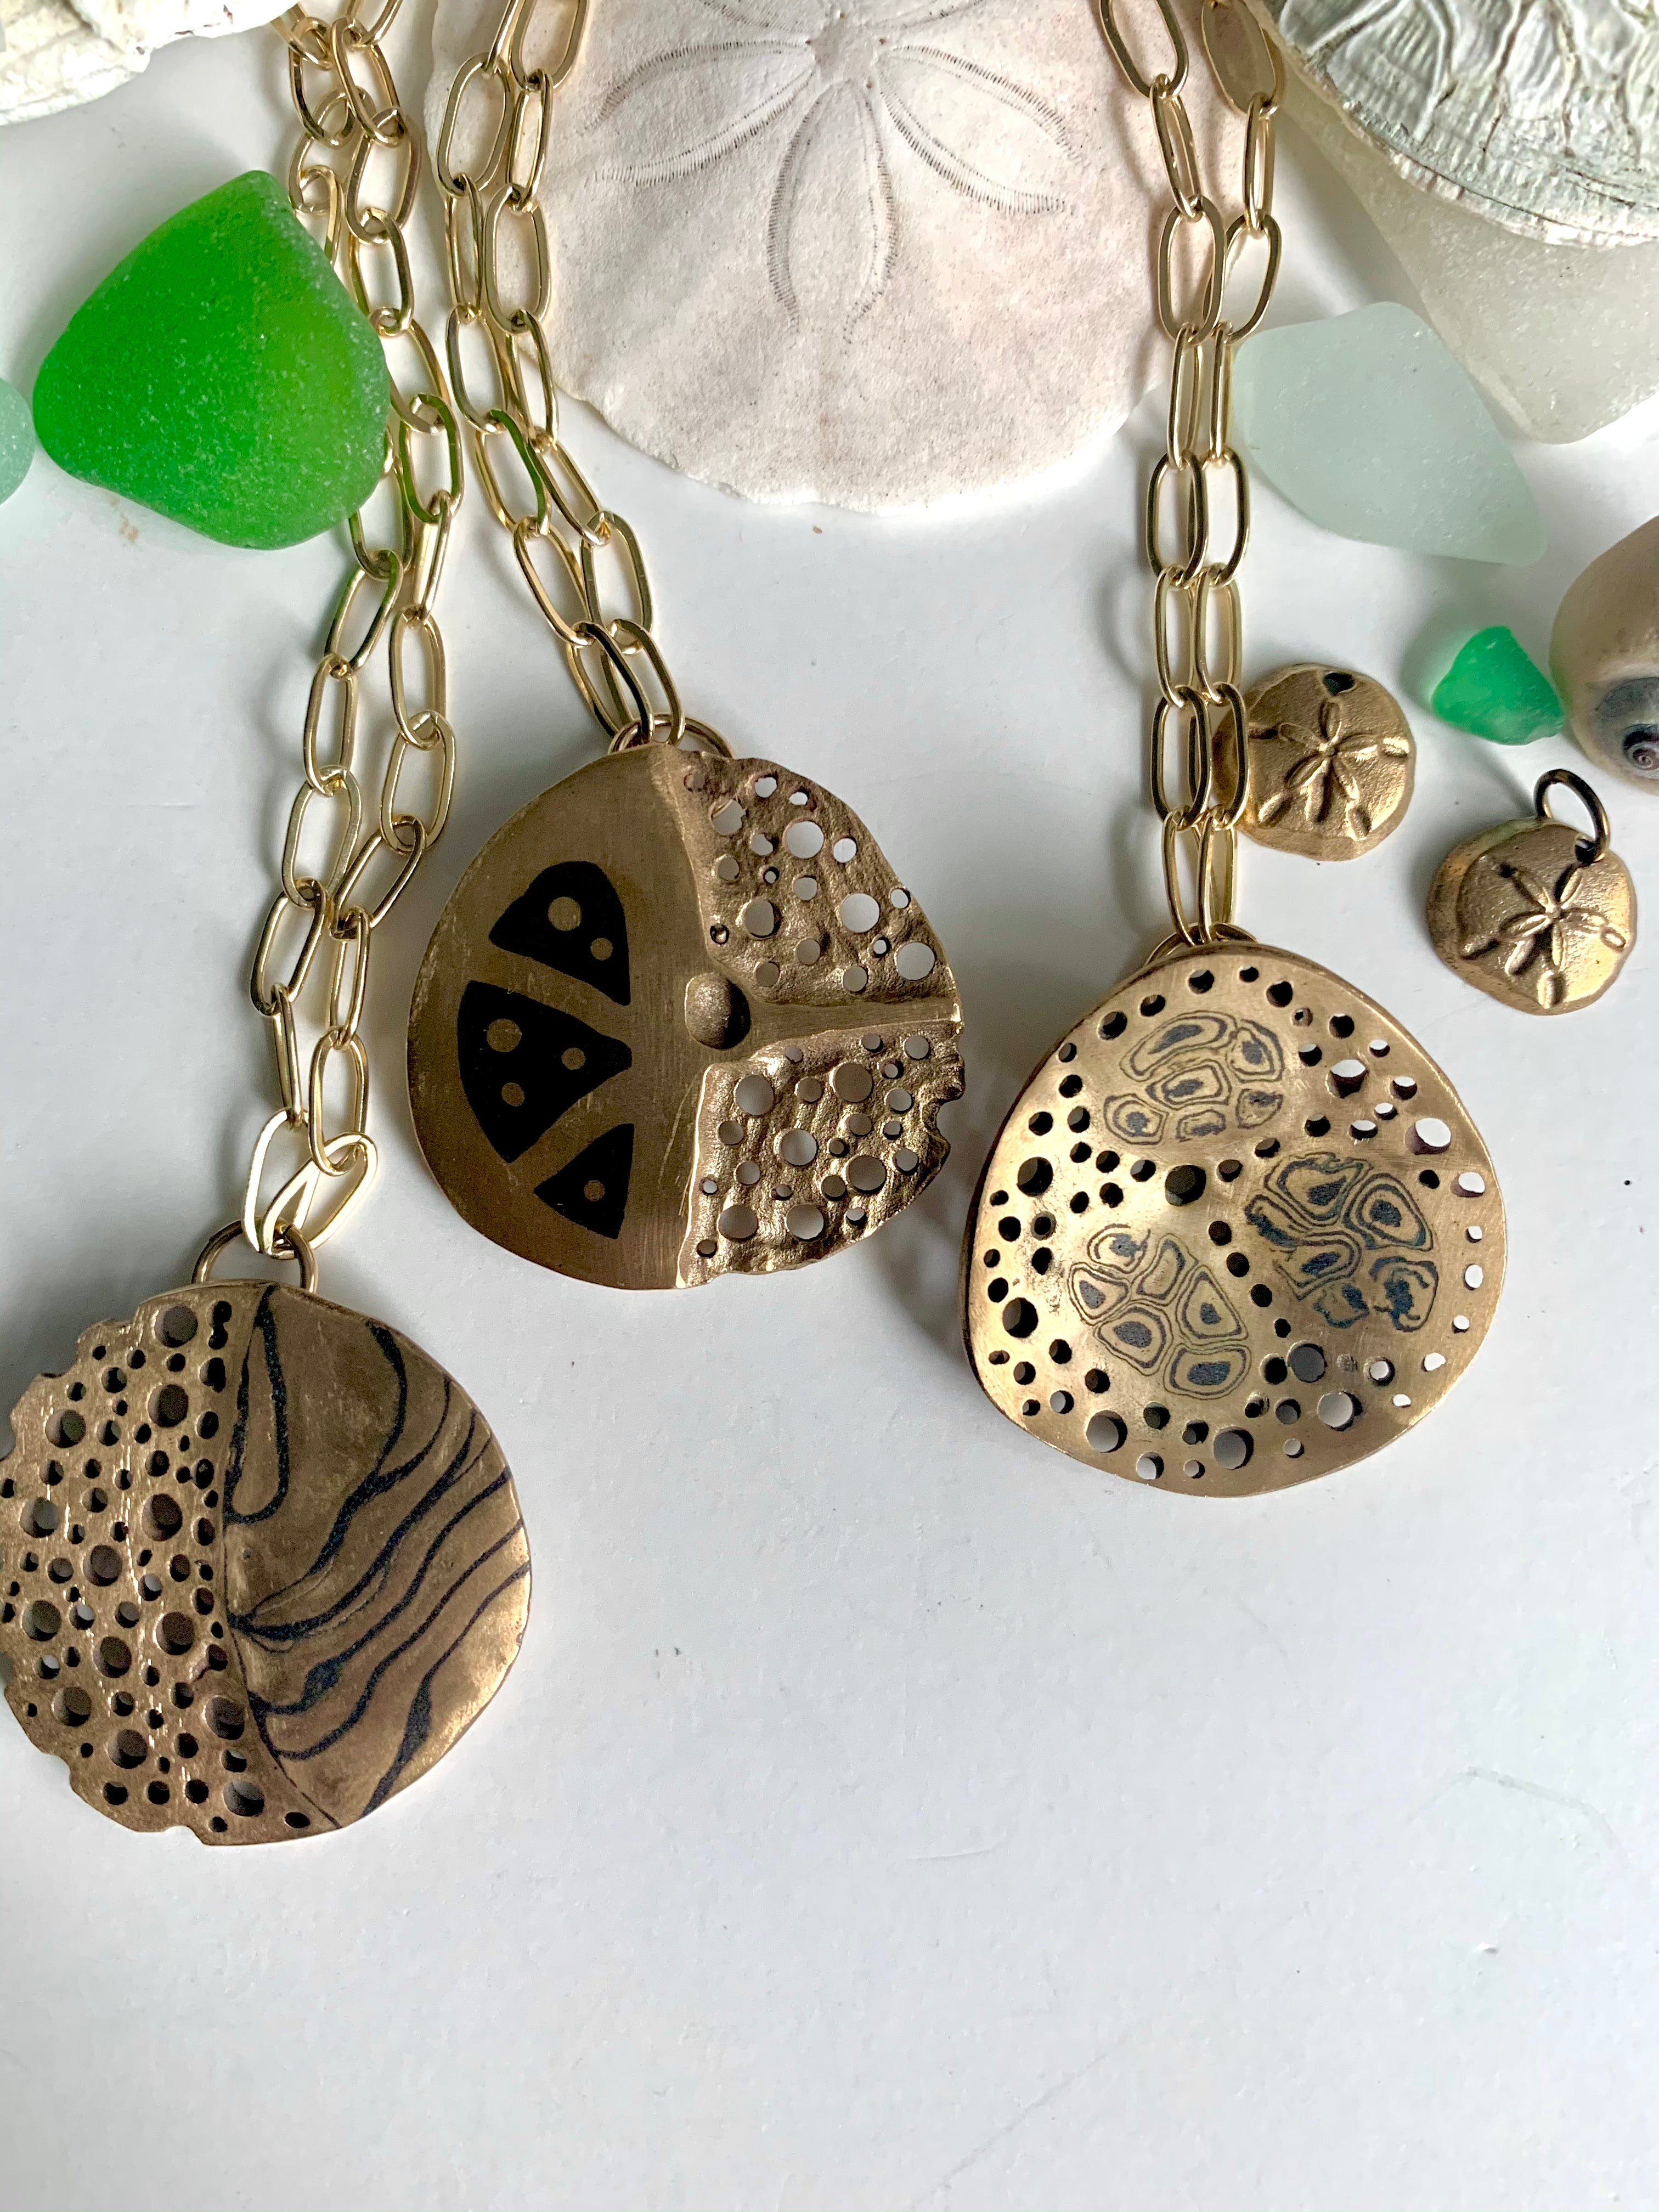 Sea shells with ocean inspired art jewelry necklaces